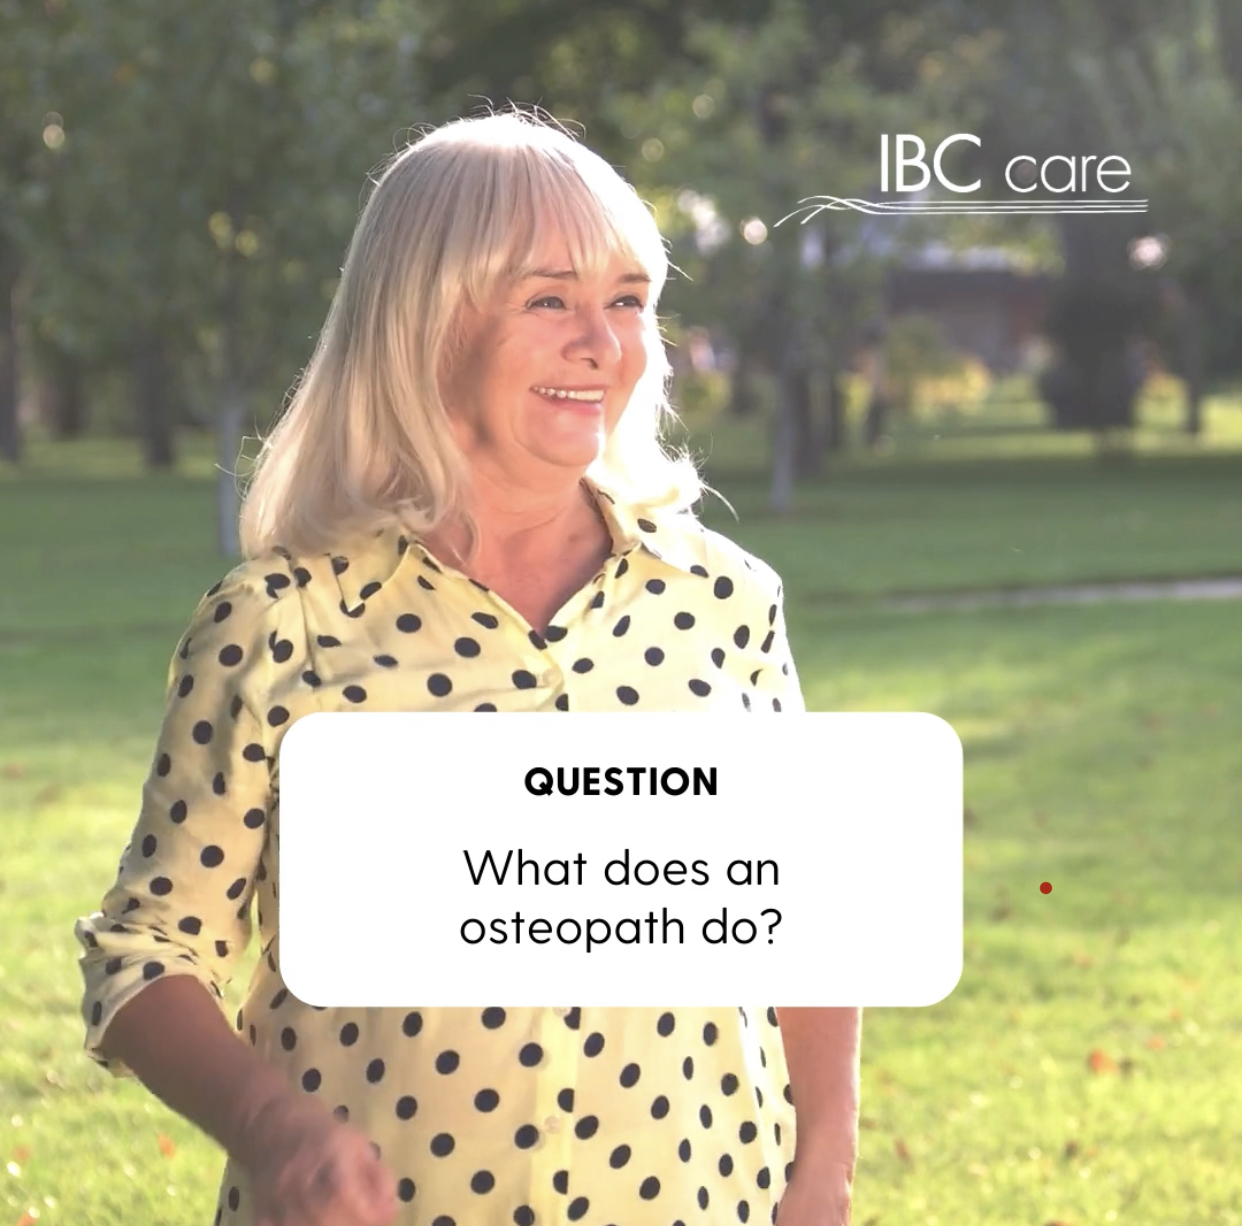 What does an osteopath do?